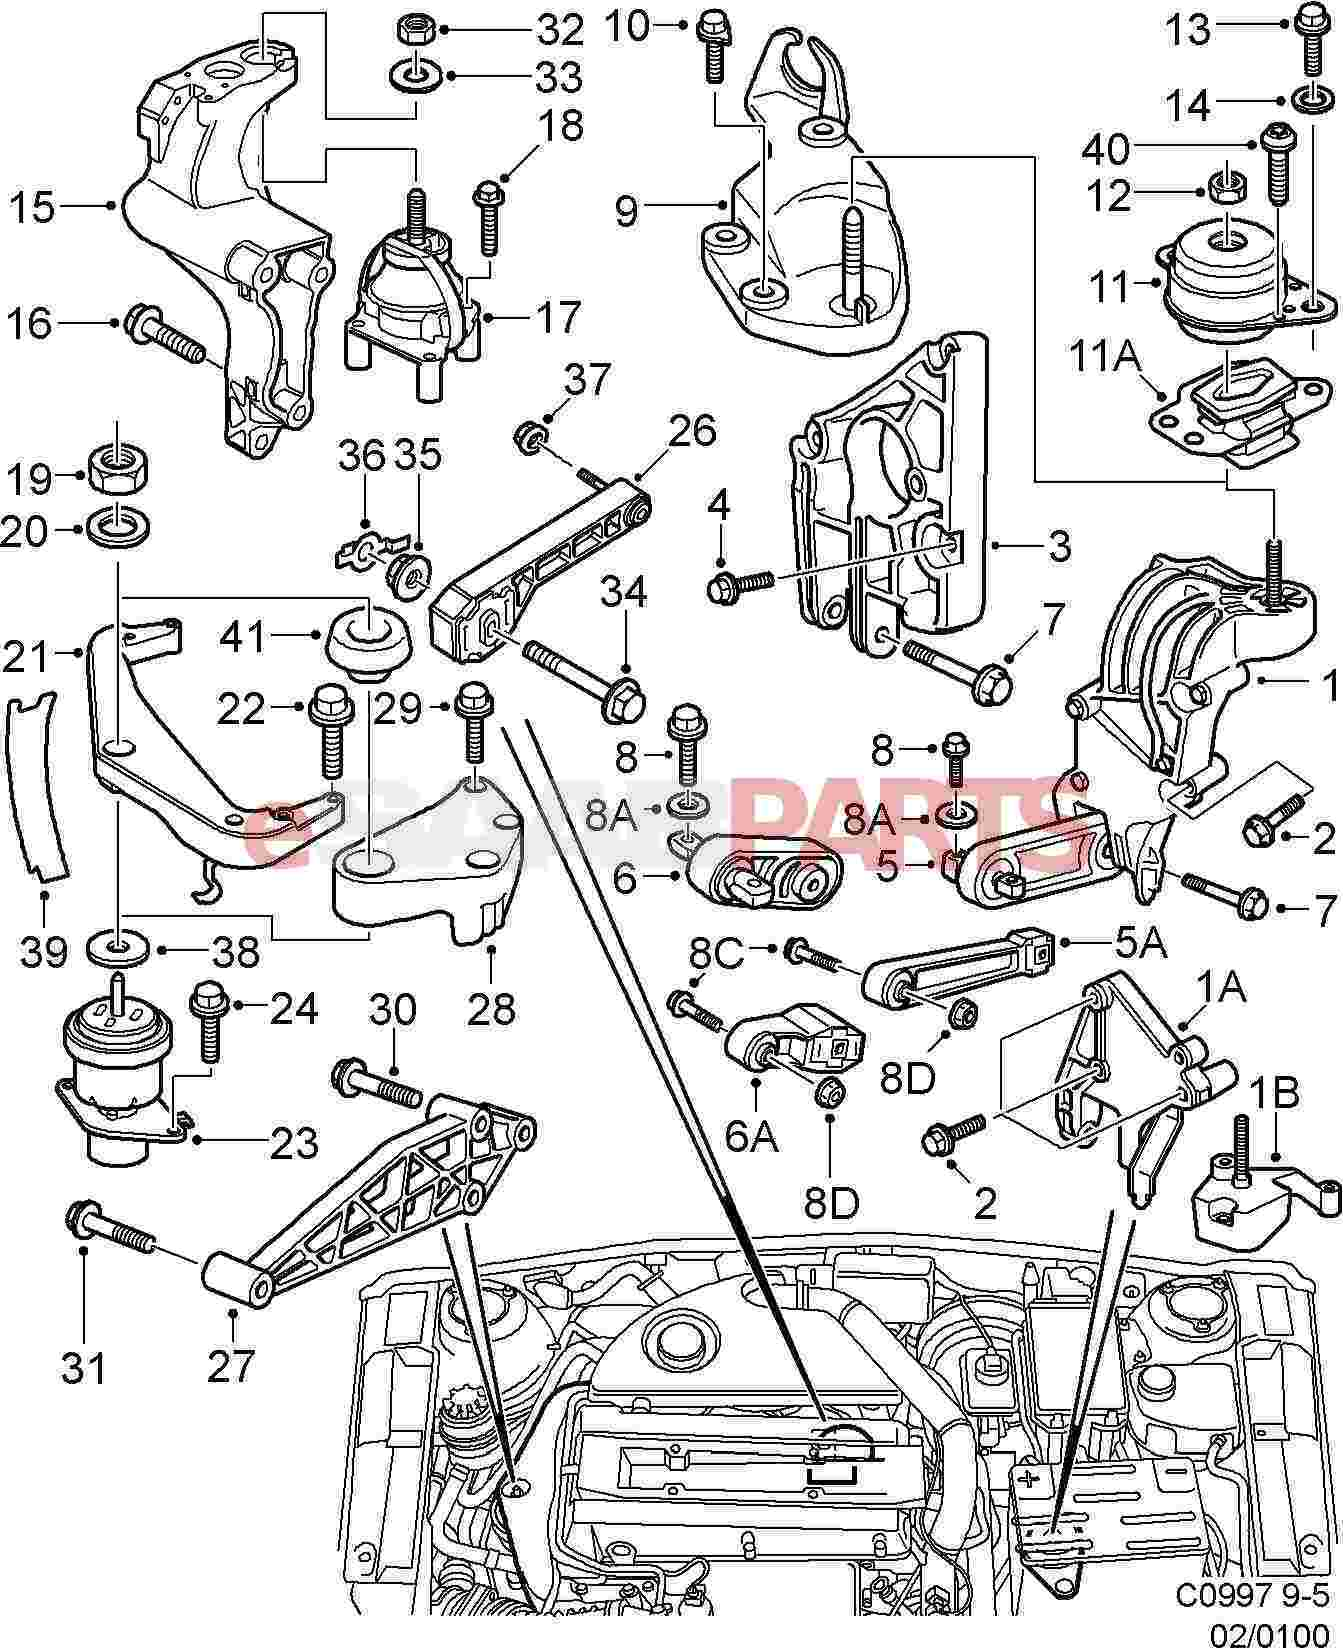 5064050 saab engine bracket genuine saab parts from esaabparts com rh esaabparts com Saab 900 Engine Diagram 1996 Saab 900 Transmission Parts Diagram